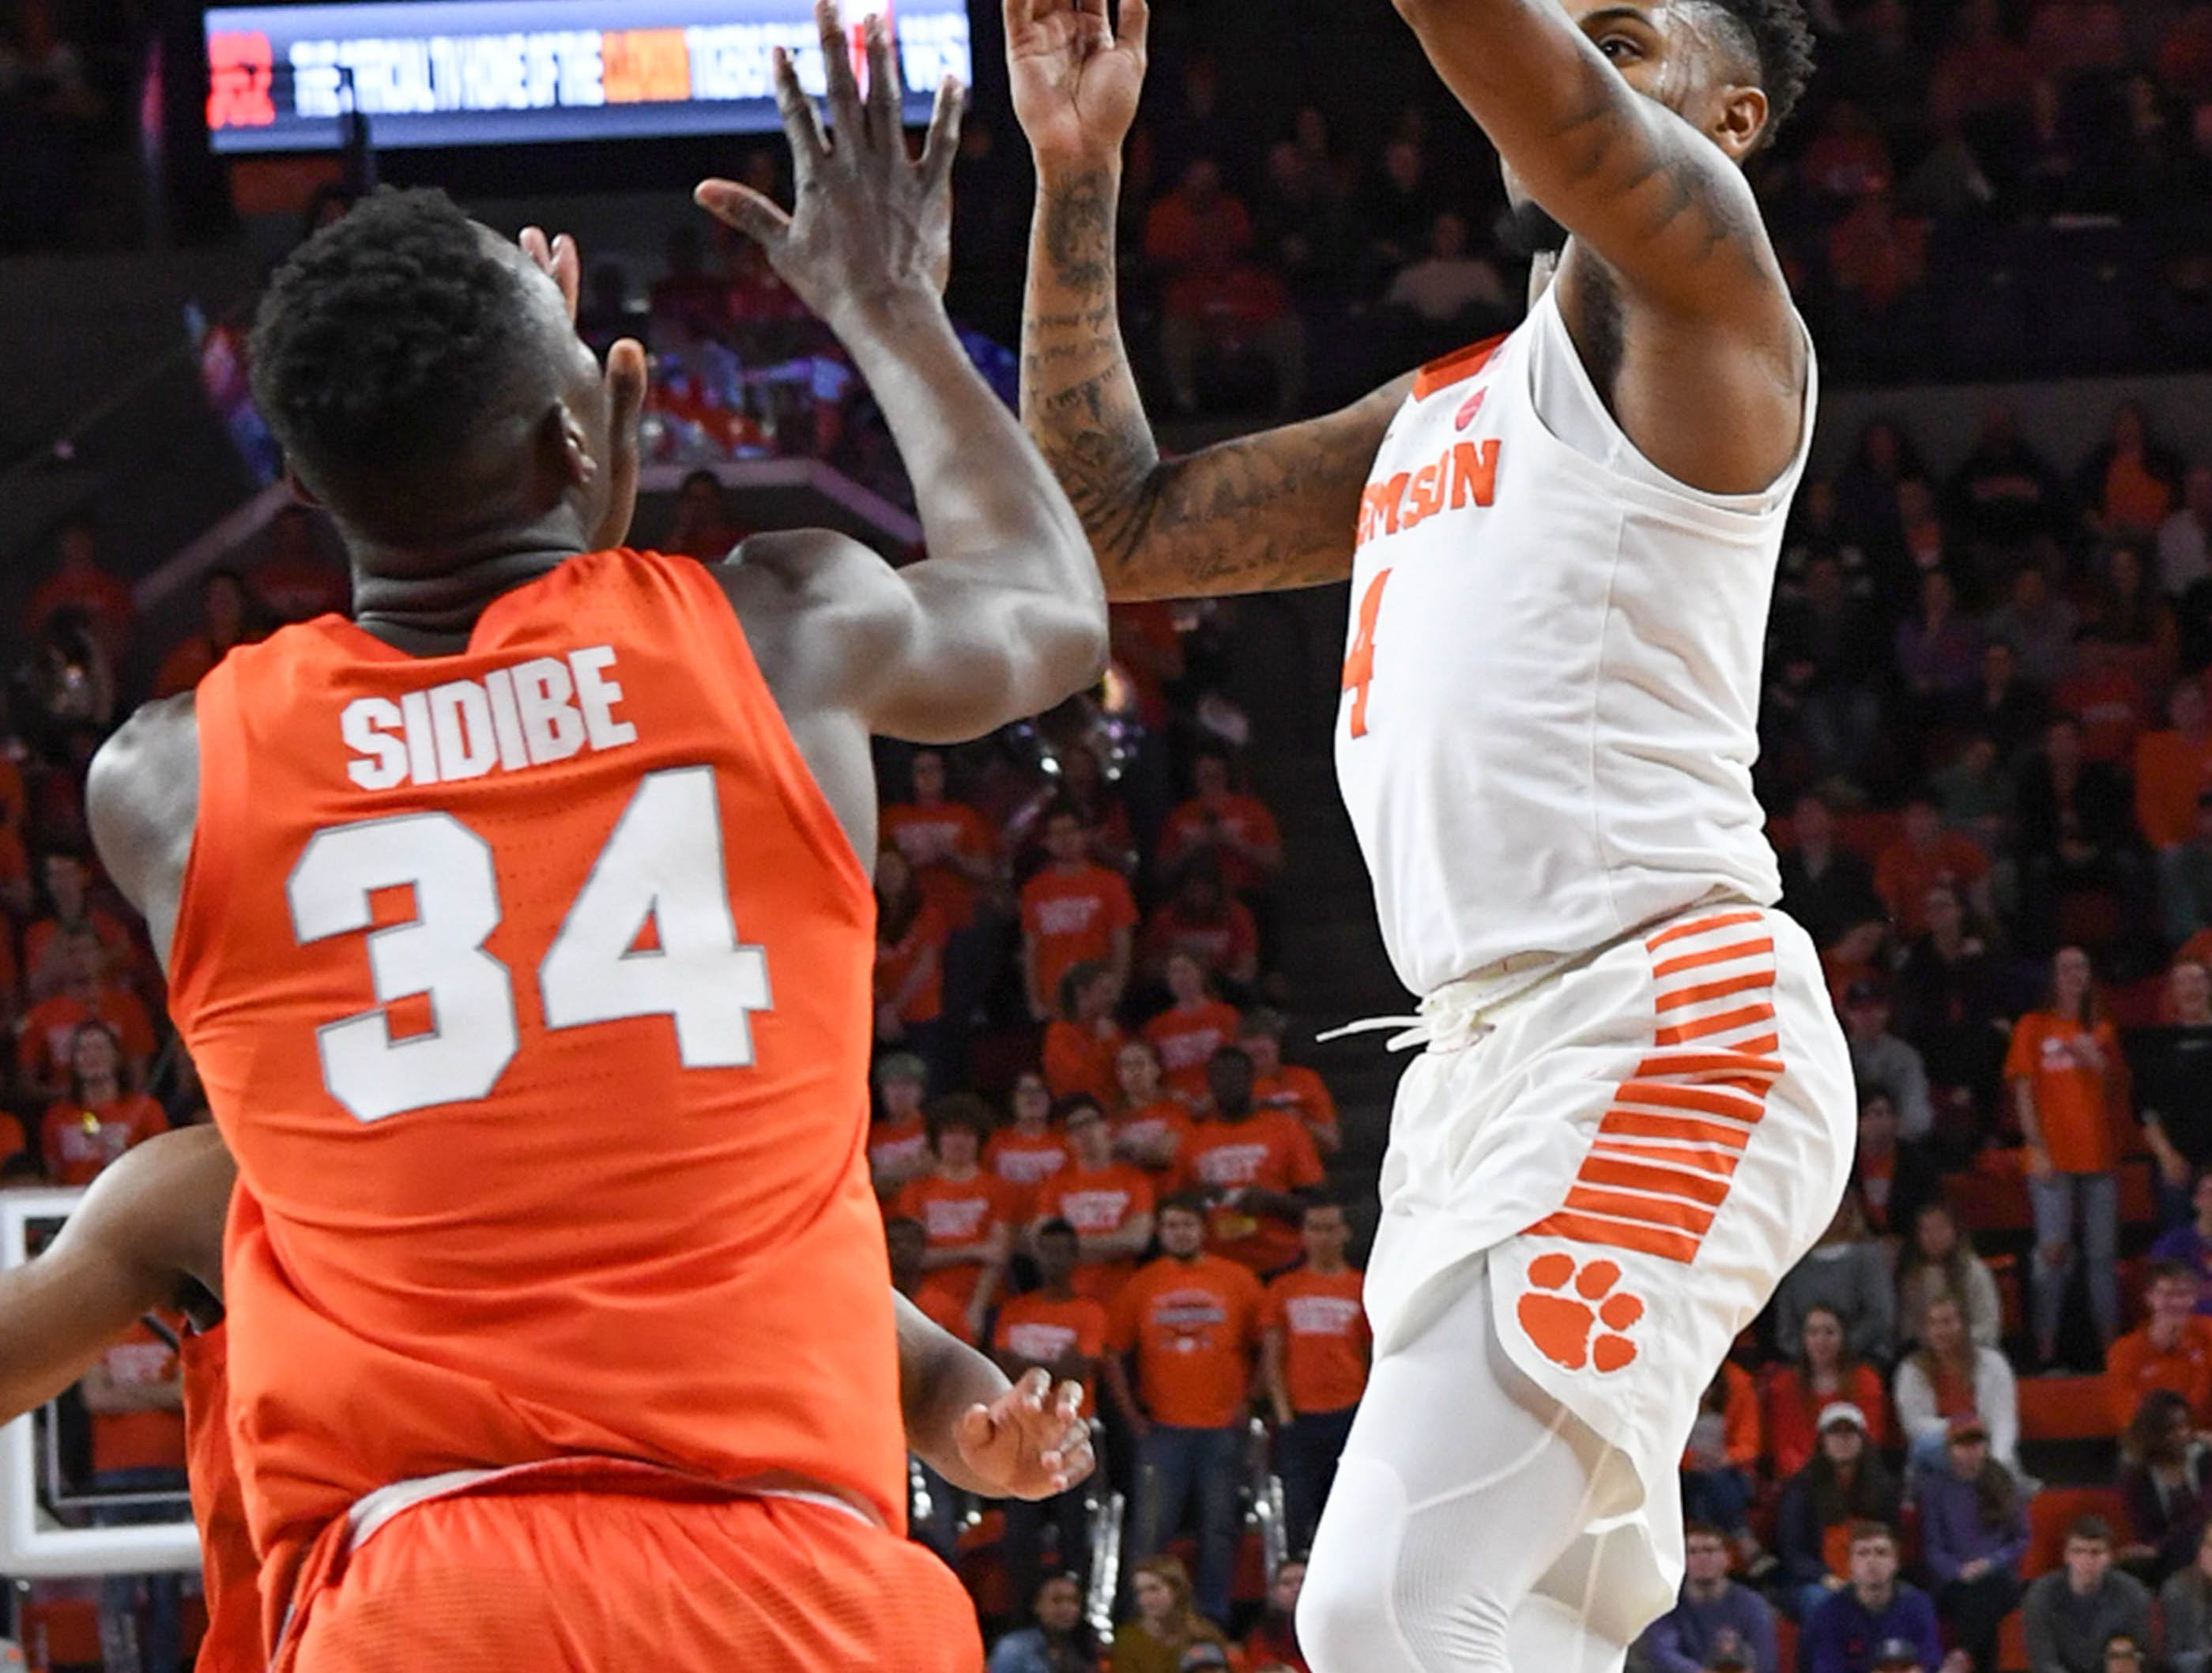 Clemson guard Shelton Mitchell (4) shoots during the second half in Littlejohn Coliseum in Clemson Saturday, March 9, 2019.